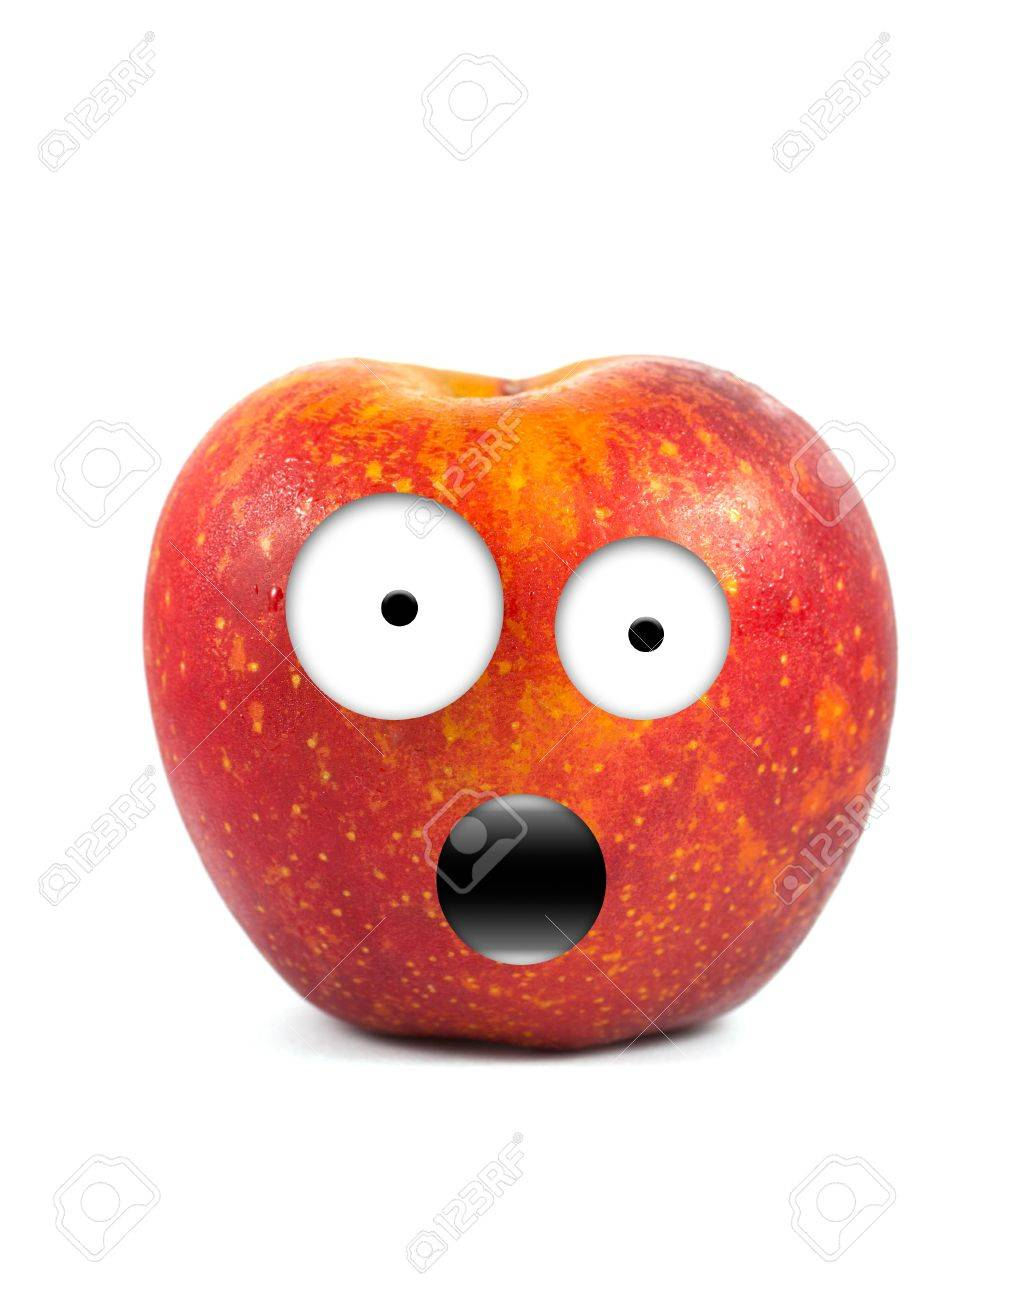 Funny fruit character Red Apple on white background Stock Photo - 16194859